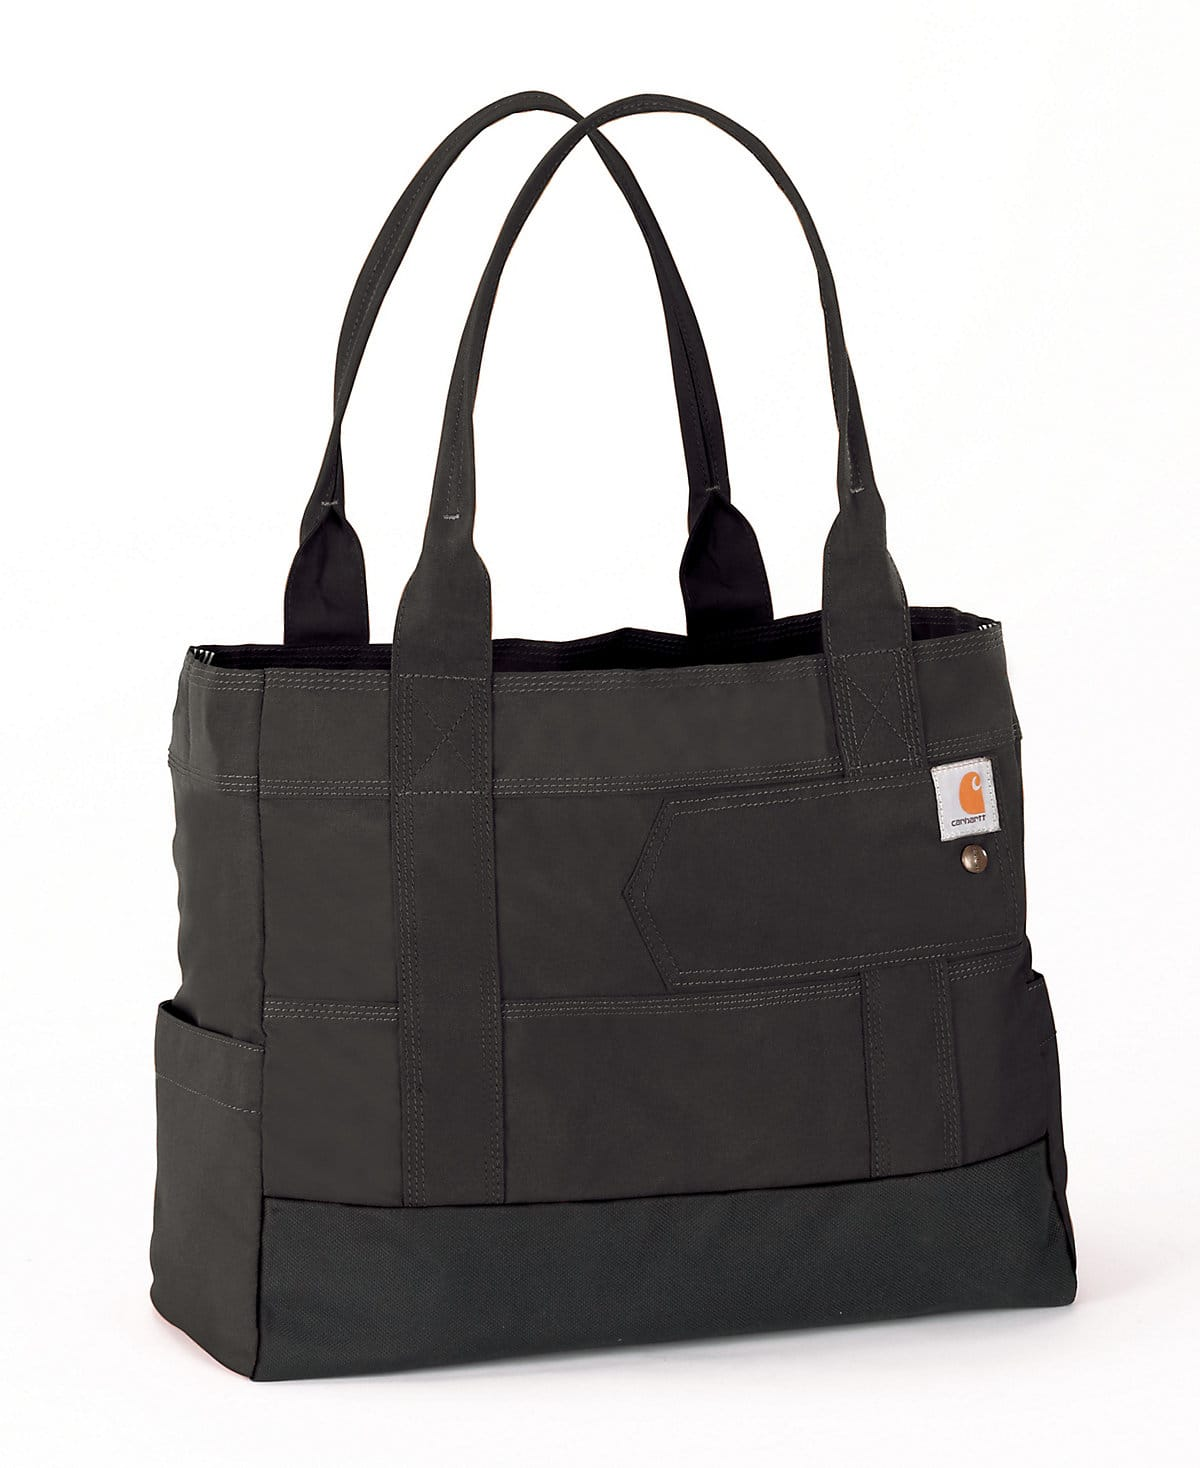 4437155bd0a5 Women s Legacy East West Tote 131021B